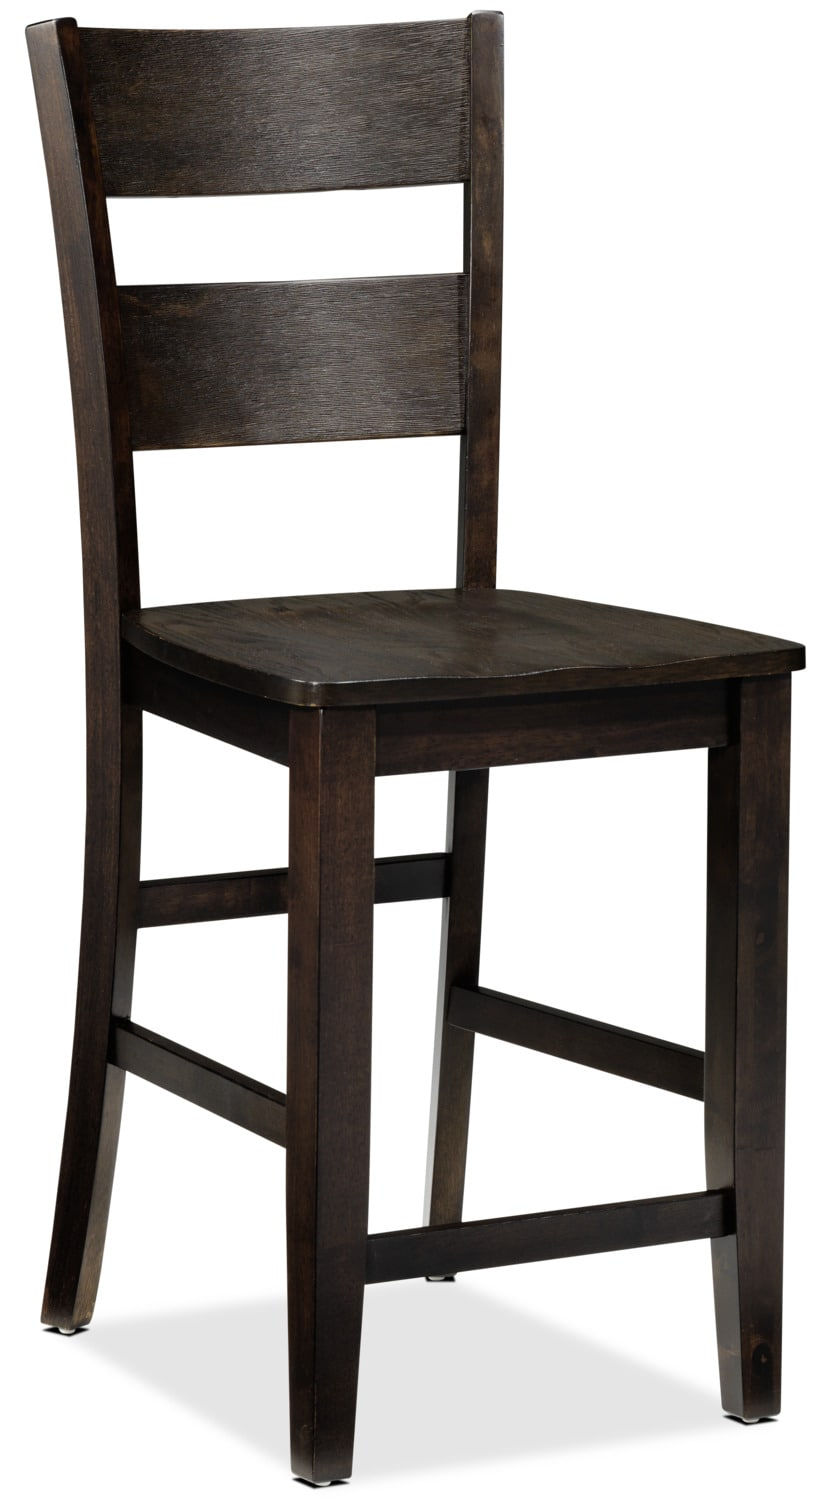 Jerry Pub Chair - Rustic Brown